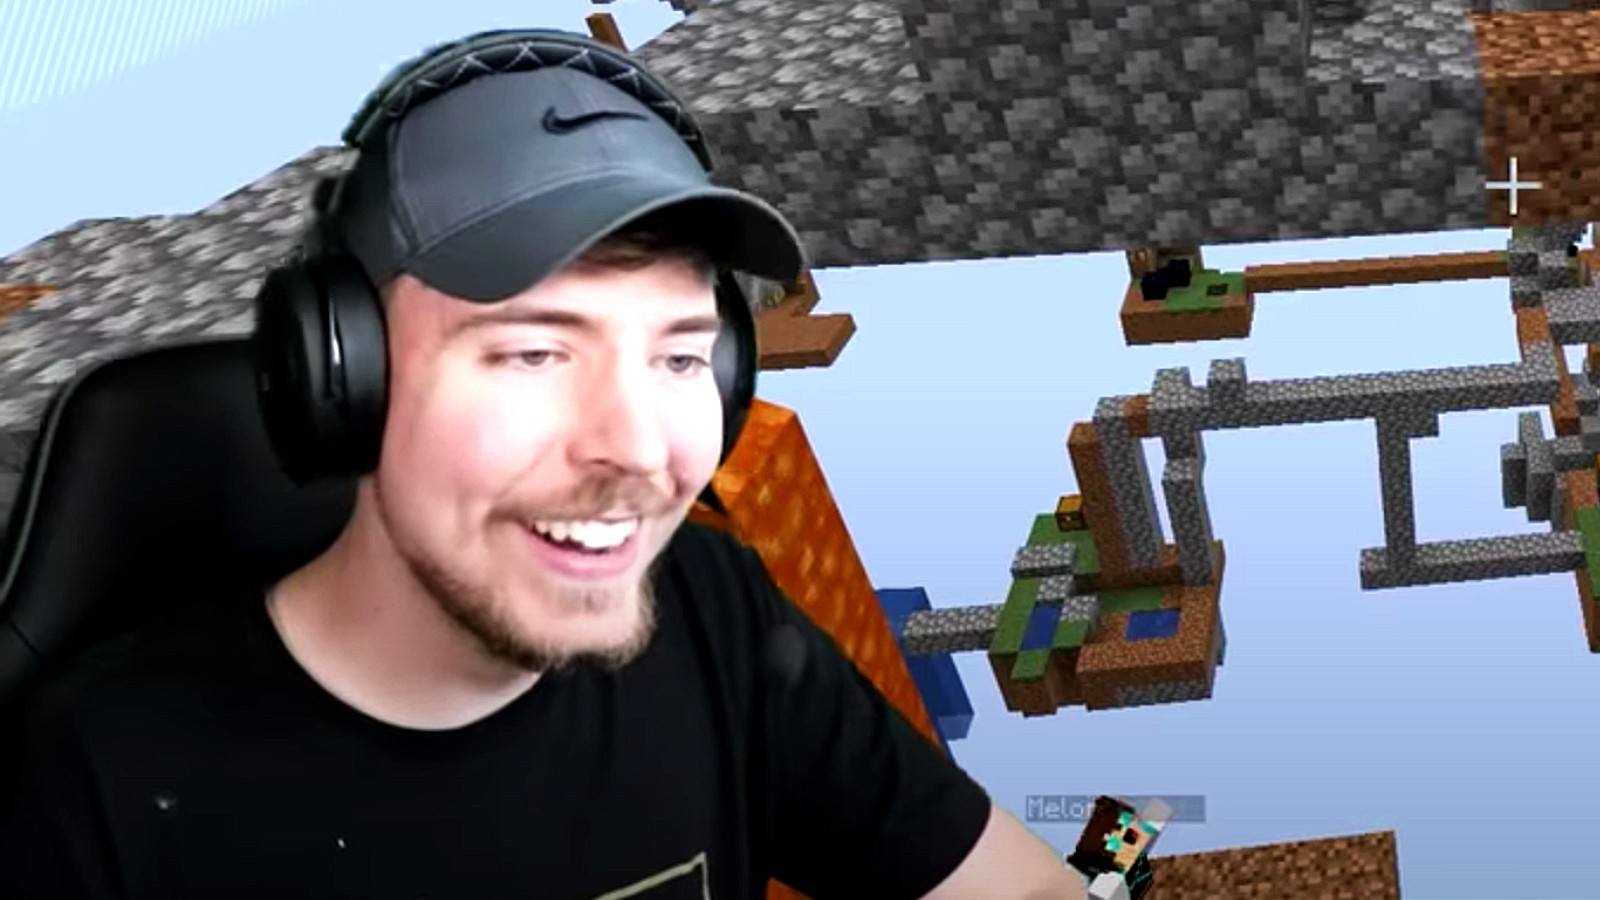 MrBeast in Minecraft YouTube challenge